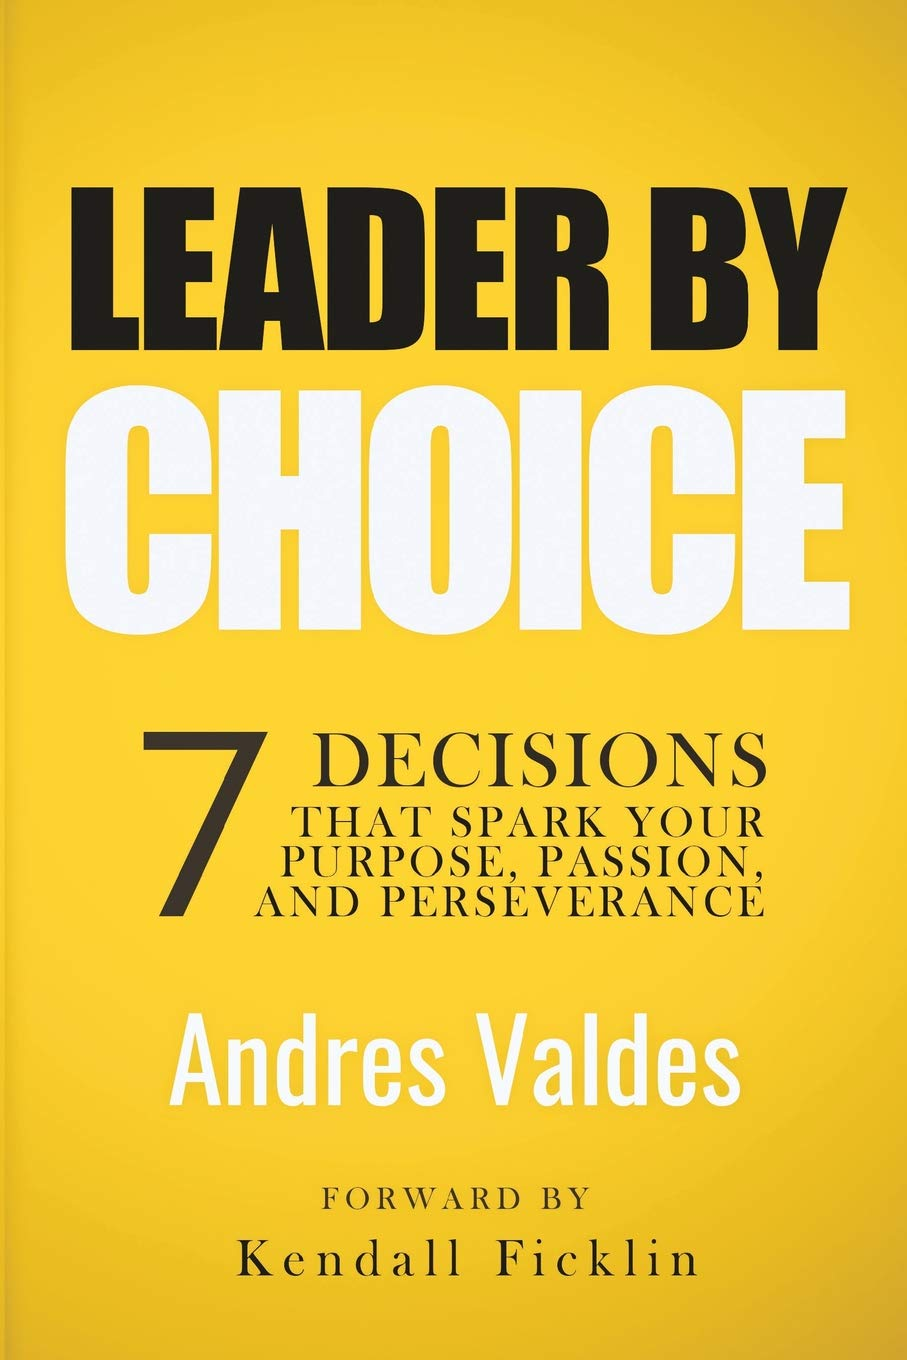 Leader By Choice: 7 Decisions That Spark Your Purpose, Passion, And Perseverance PDF